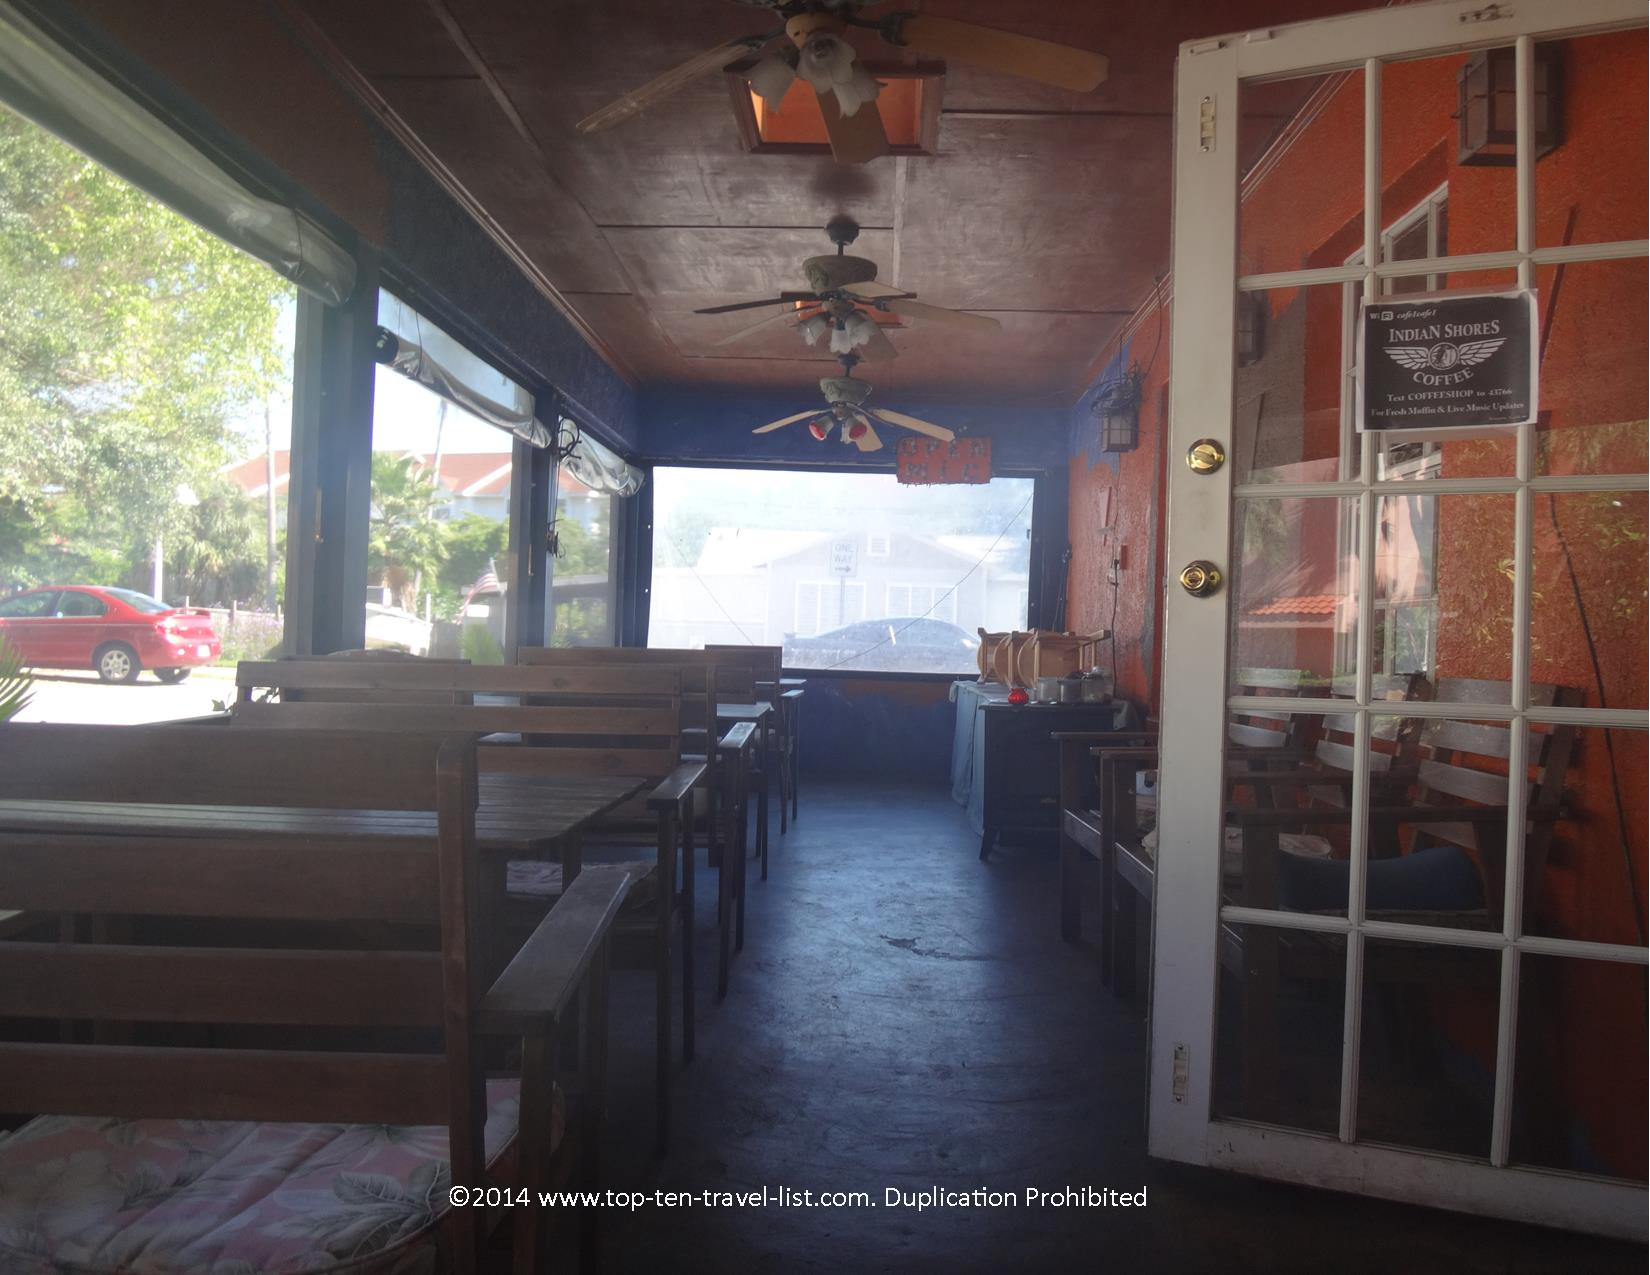 Breezy outdoor patio at Indian Shores Coffee Company in Indian Rocks Beach, Florida